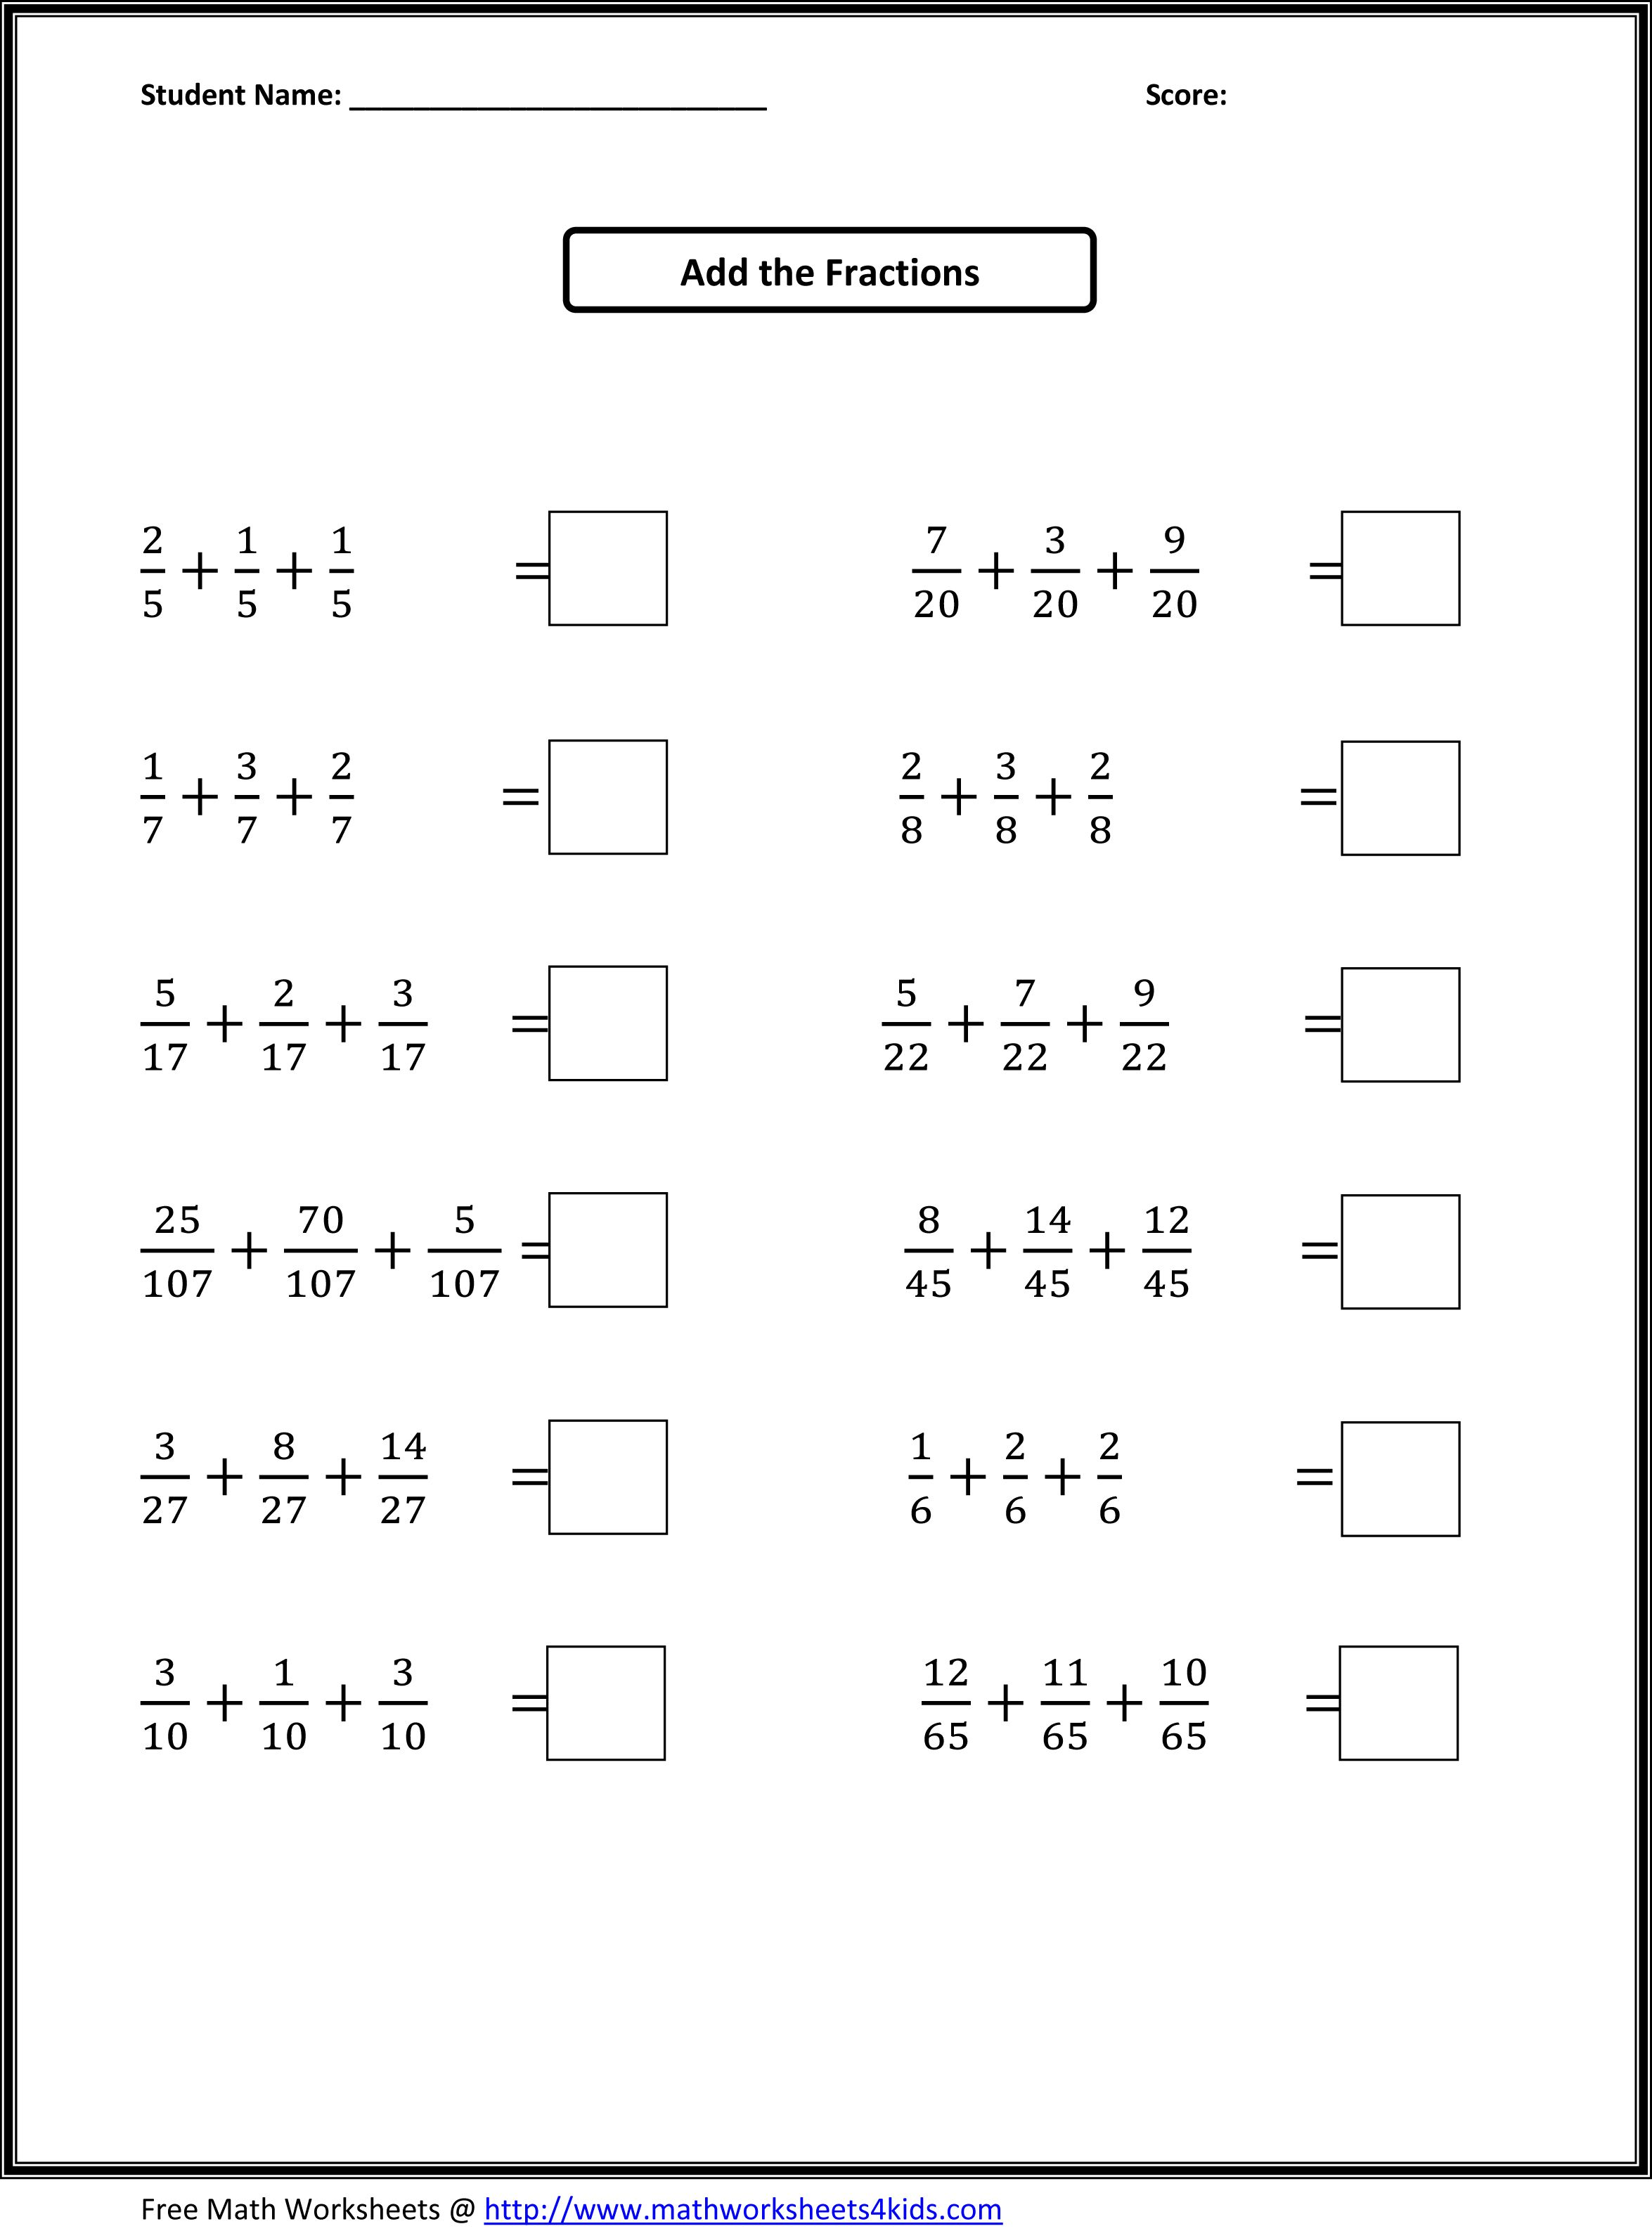 Worksheets for all early ed grades All topics of math – Year 7 Fractions Worksheets